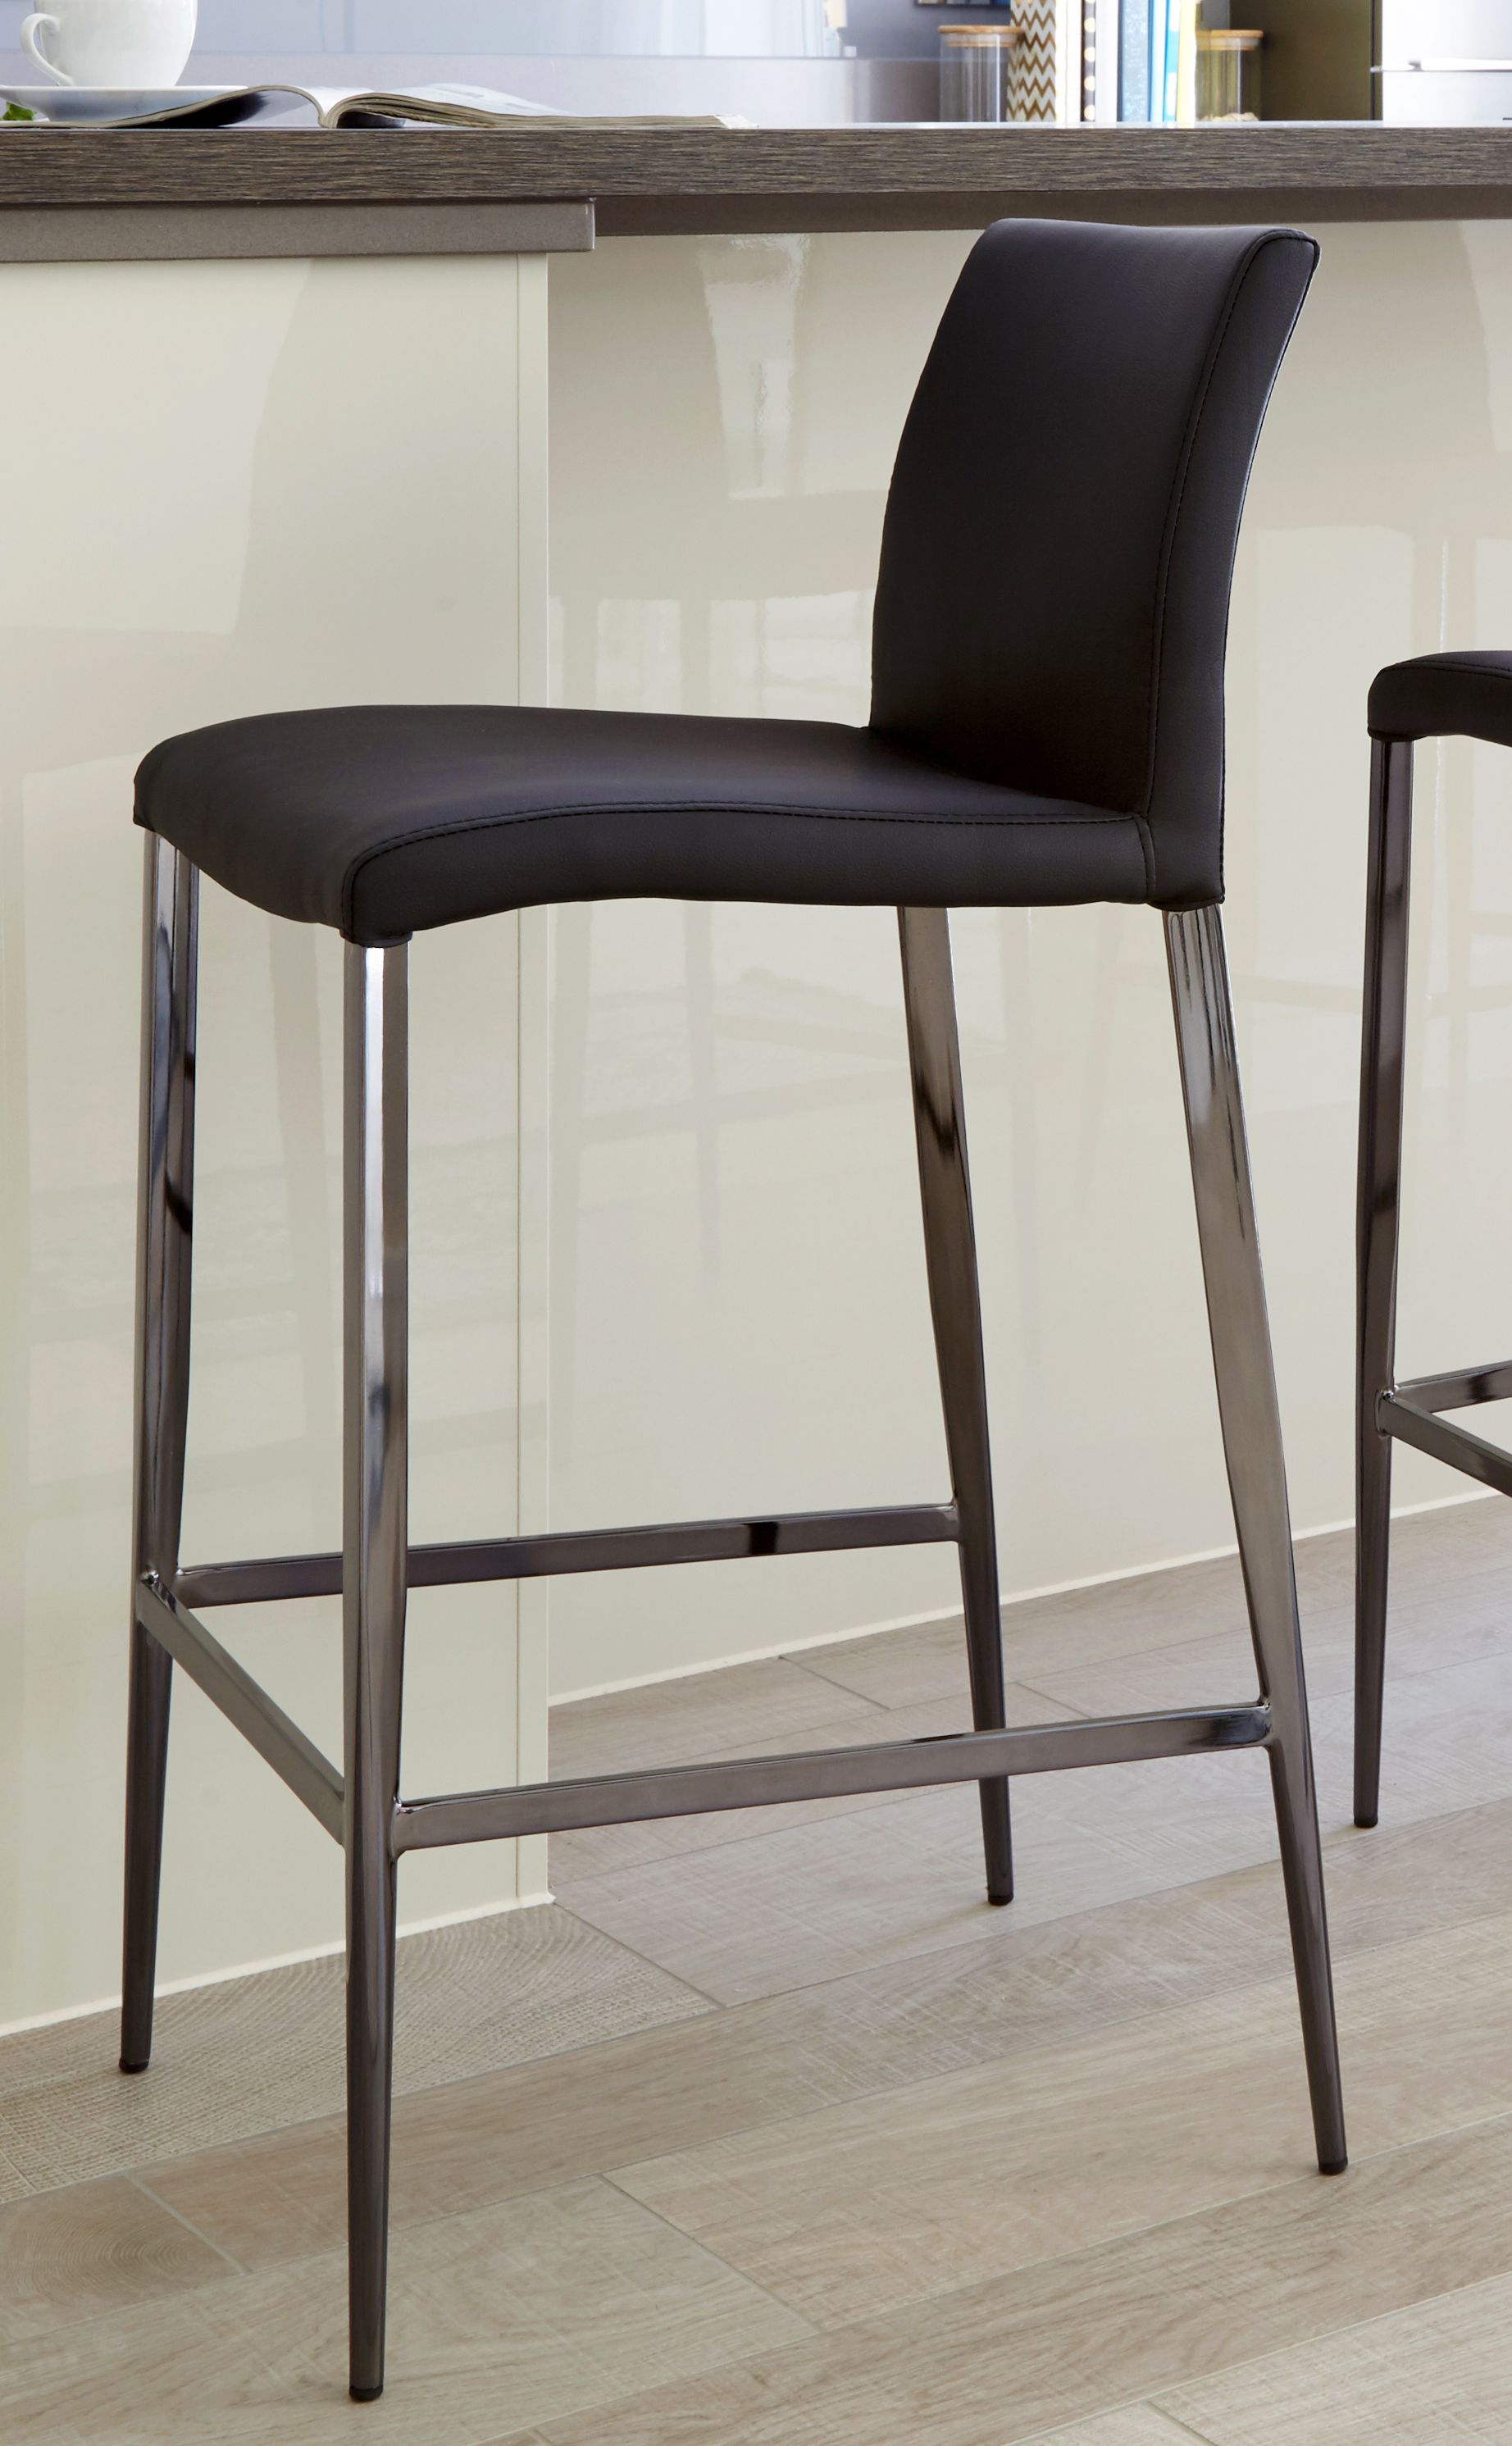 Tremendous Elise Black Chrome Bar Stool Barstools In 2019 Bar Ocoug Best Dining Table And Chair Ideas Images Ocougorg